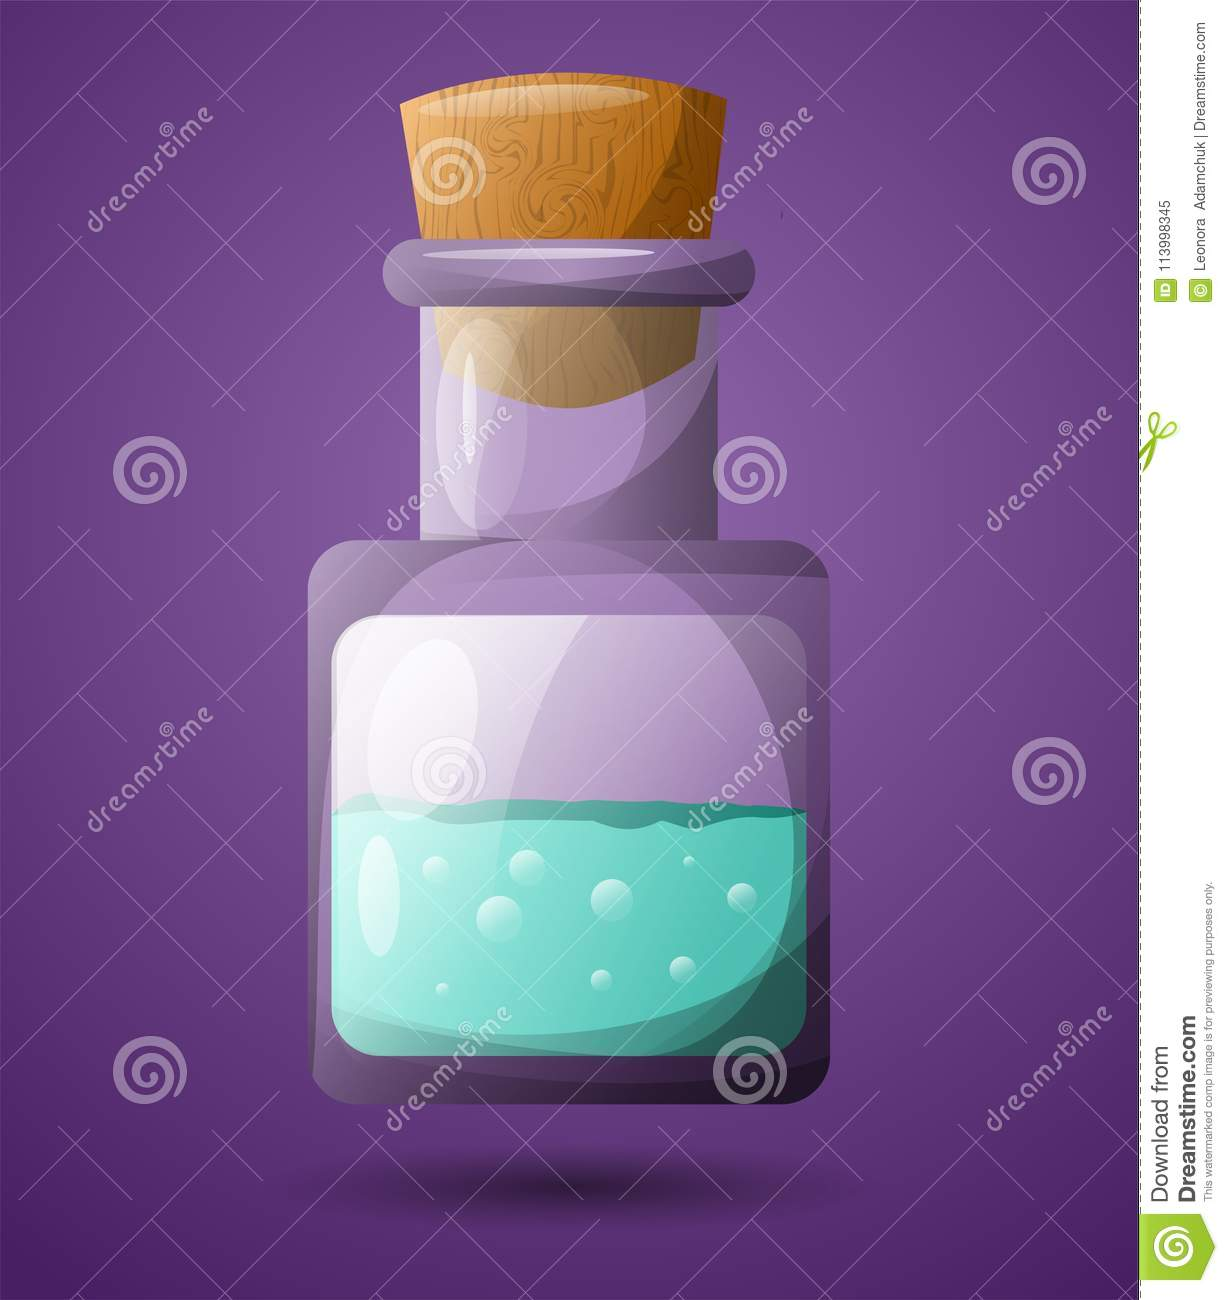 Download A Test Tube With A Green Liquid. For Design In Games. High Speed Poison. Stock Illustration - Illustration of experiment, container: 113998345